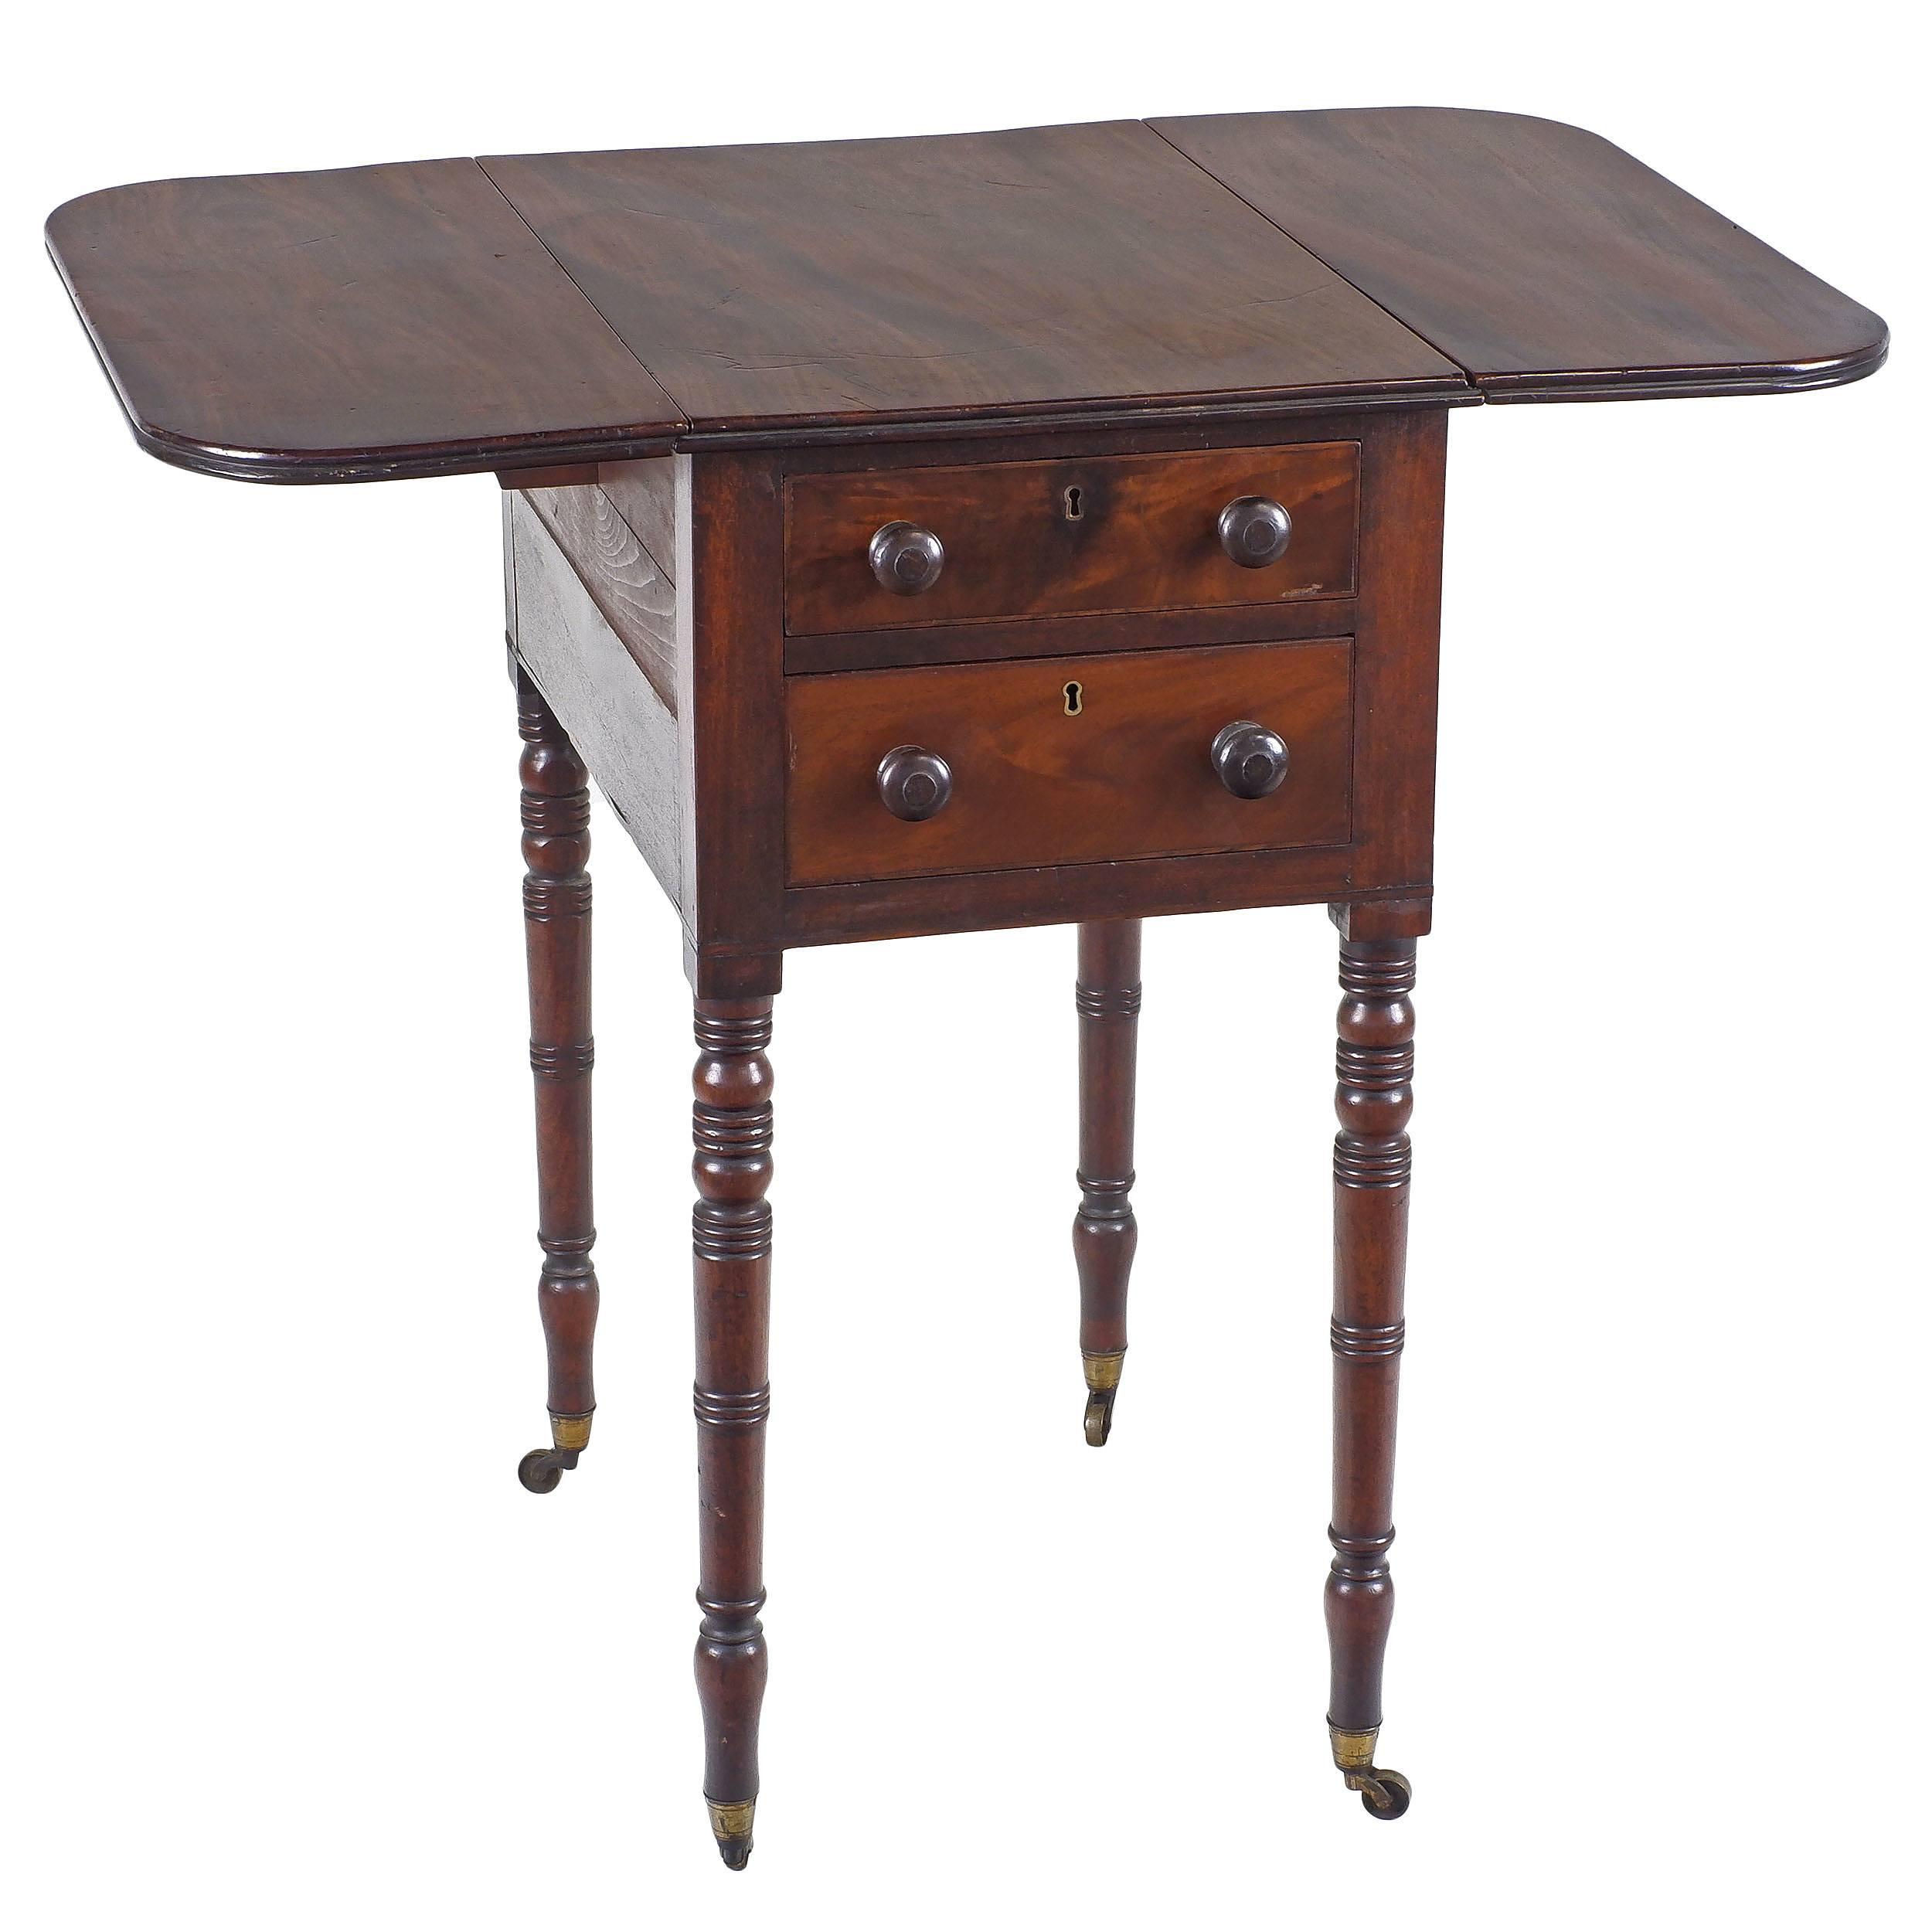 'Small Late Georgian Mahogany Pembroke Sewing Table with Fitted Drawer Circa 1825'